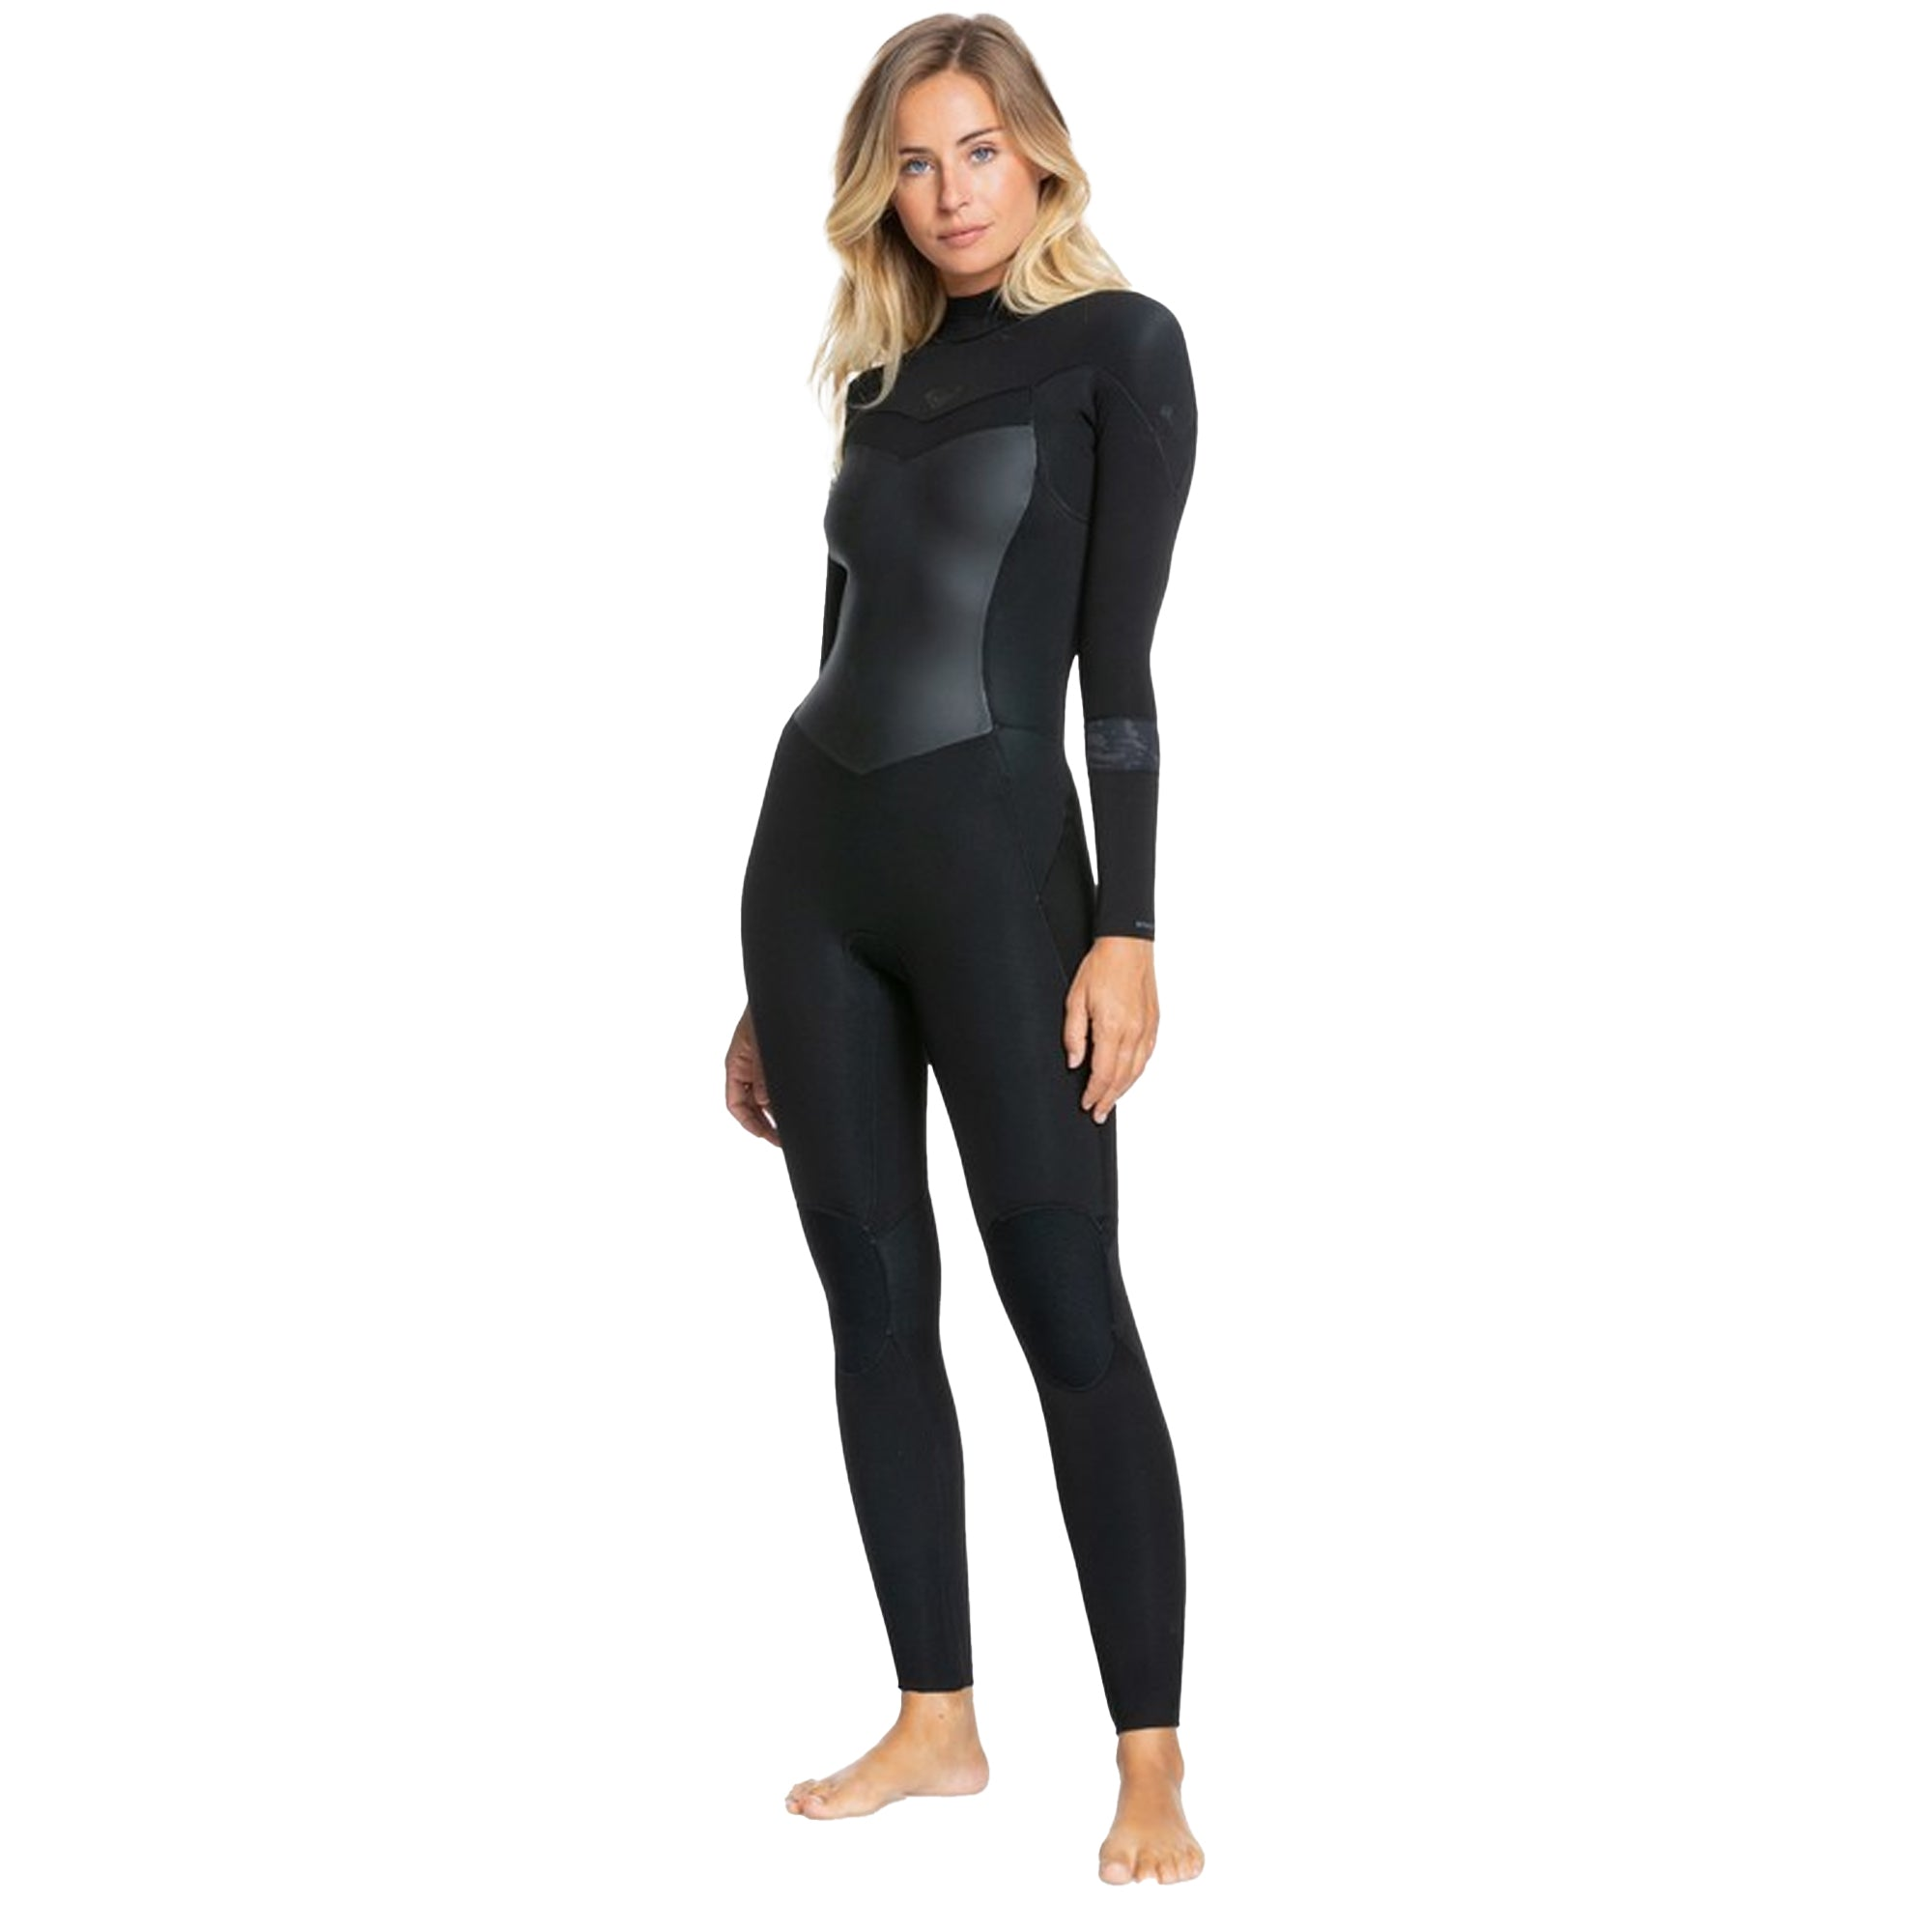 Roxy Syncro 3/2mm Women's Back-Zip Full Wetsuit